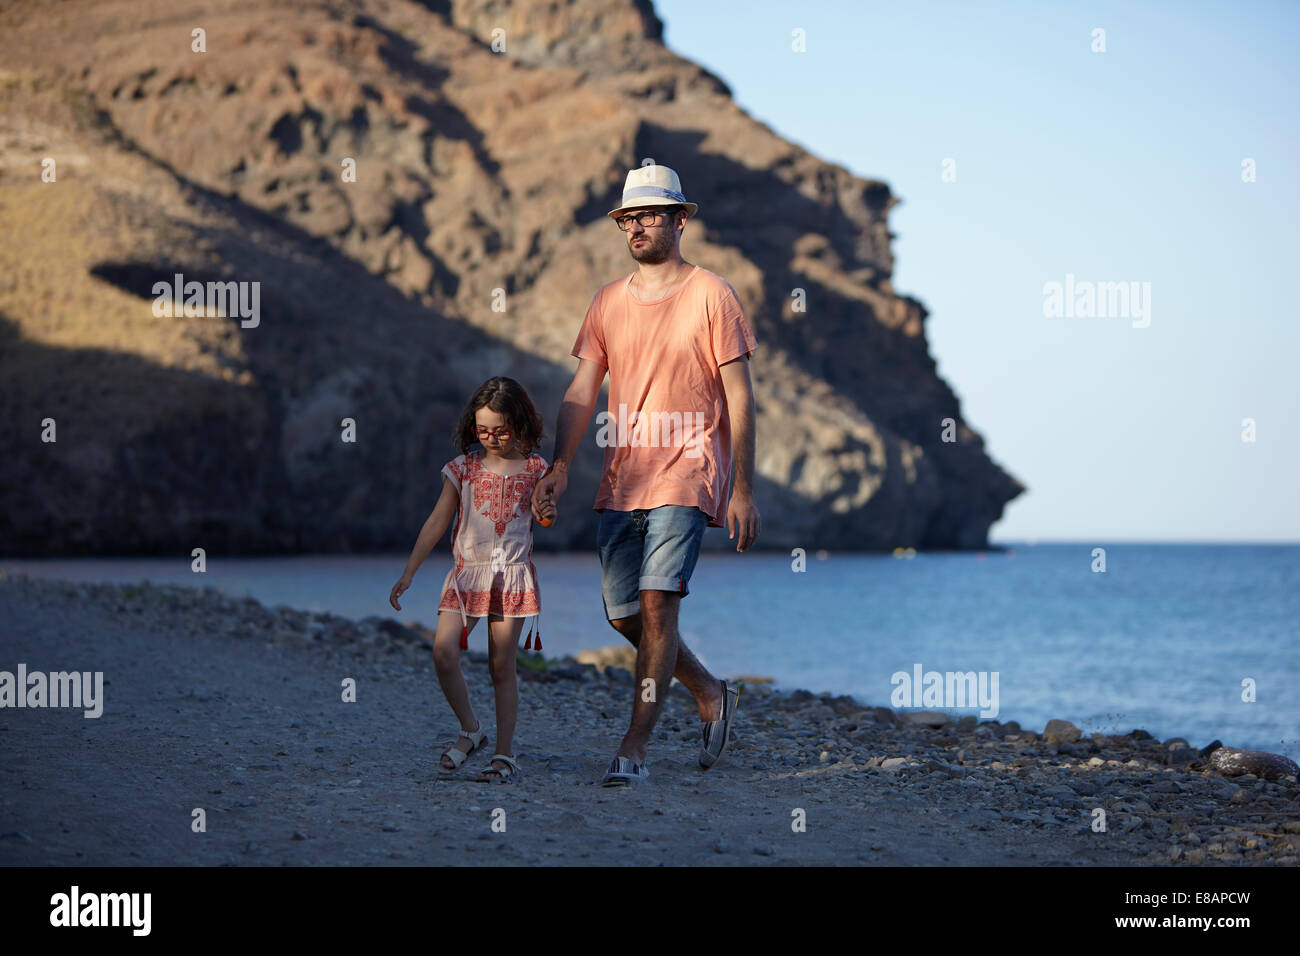 Father and daughter walking by the sea, Costa Brava, Catalonia, Spain - Stock Image